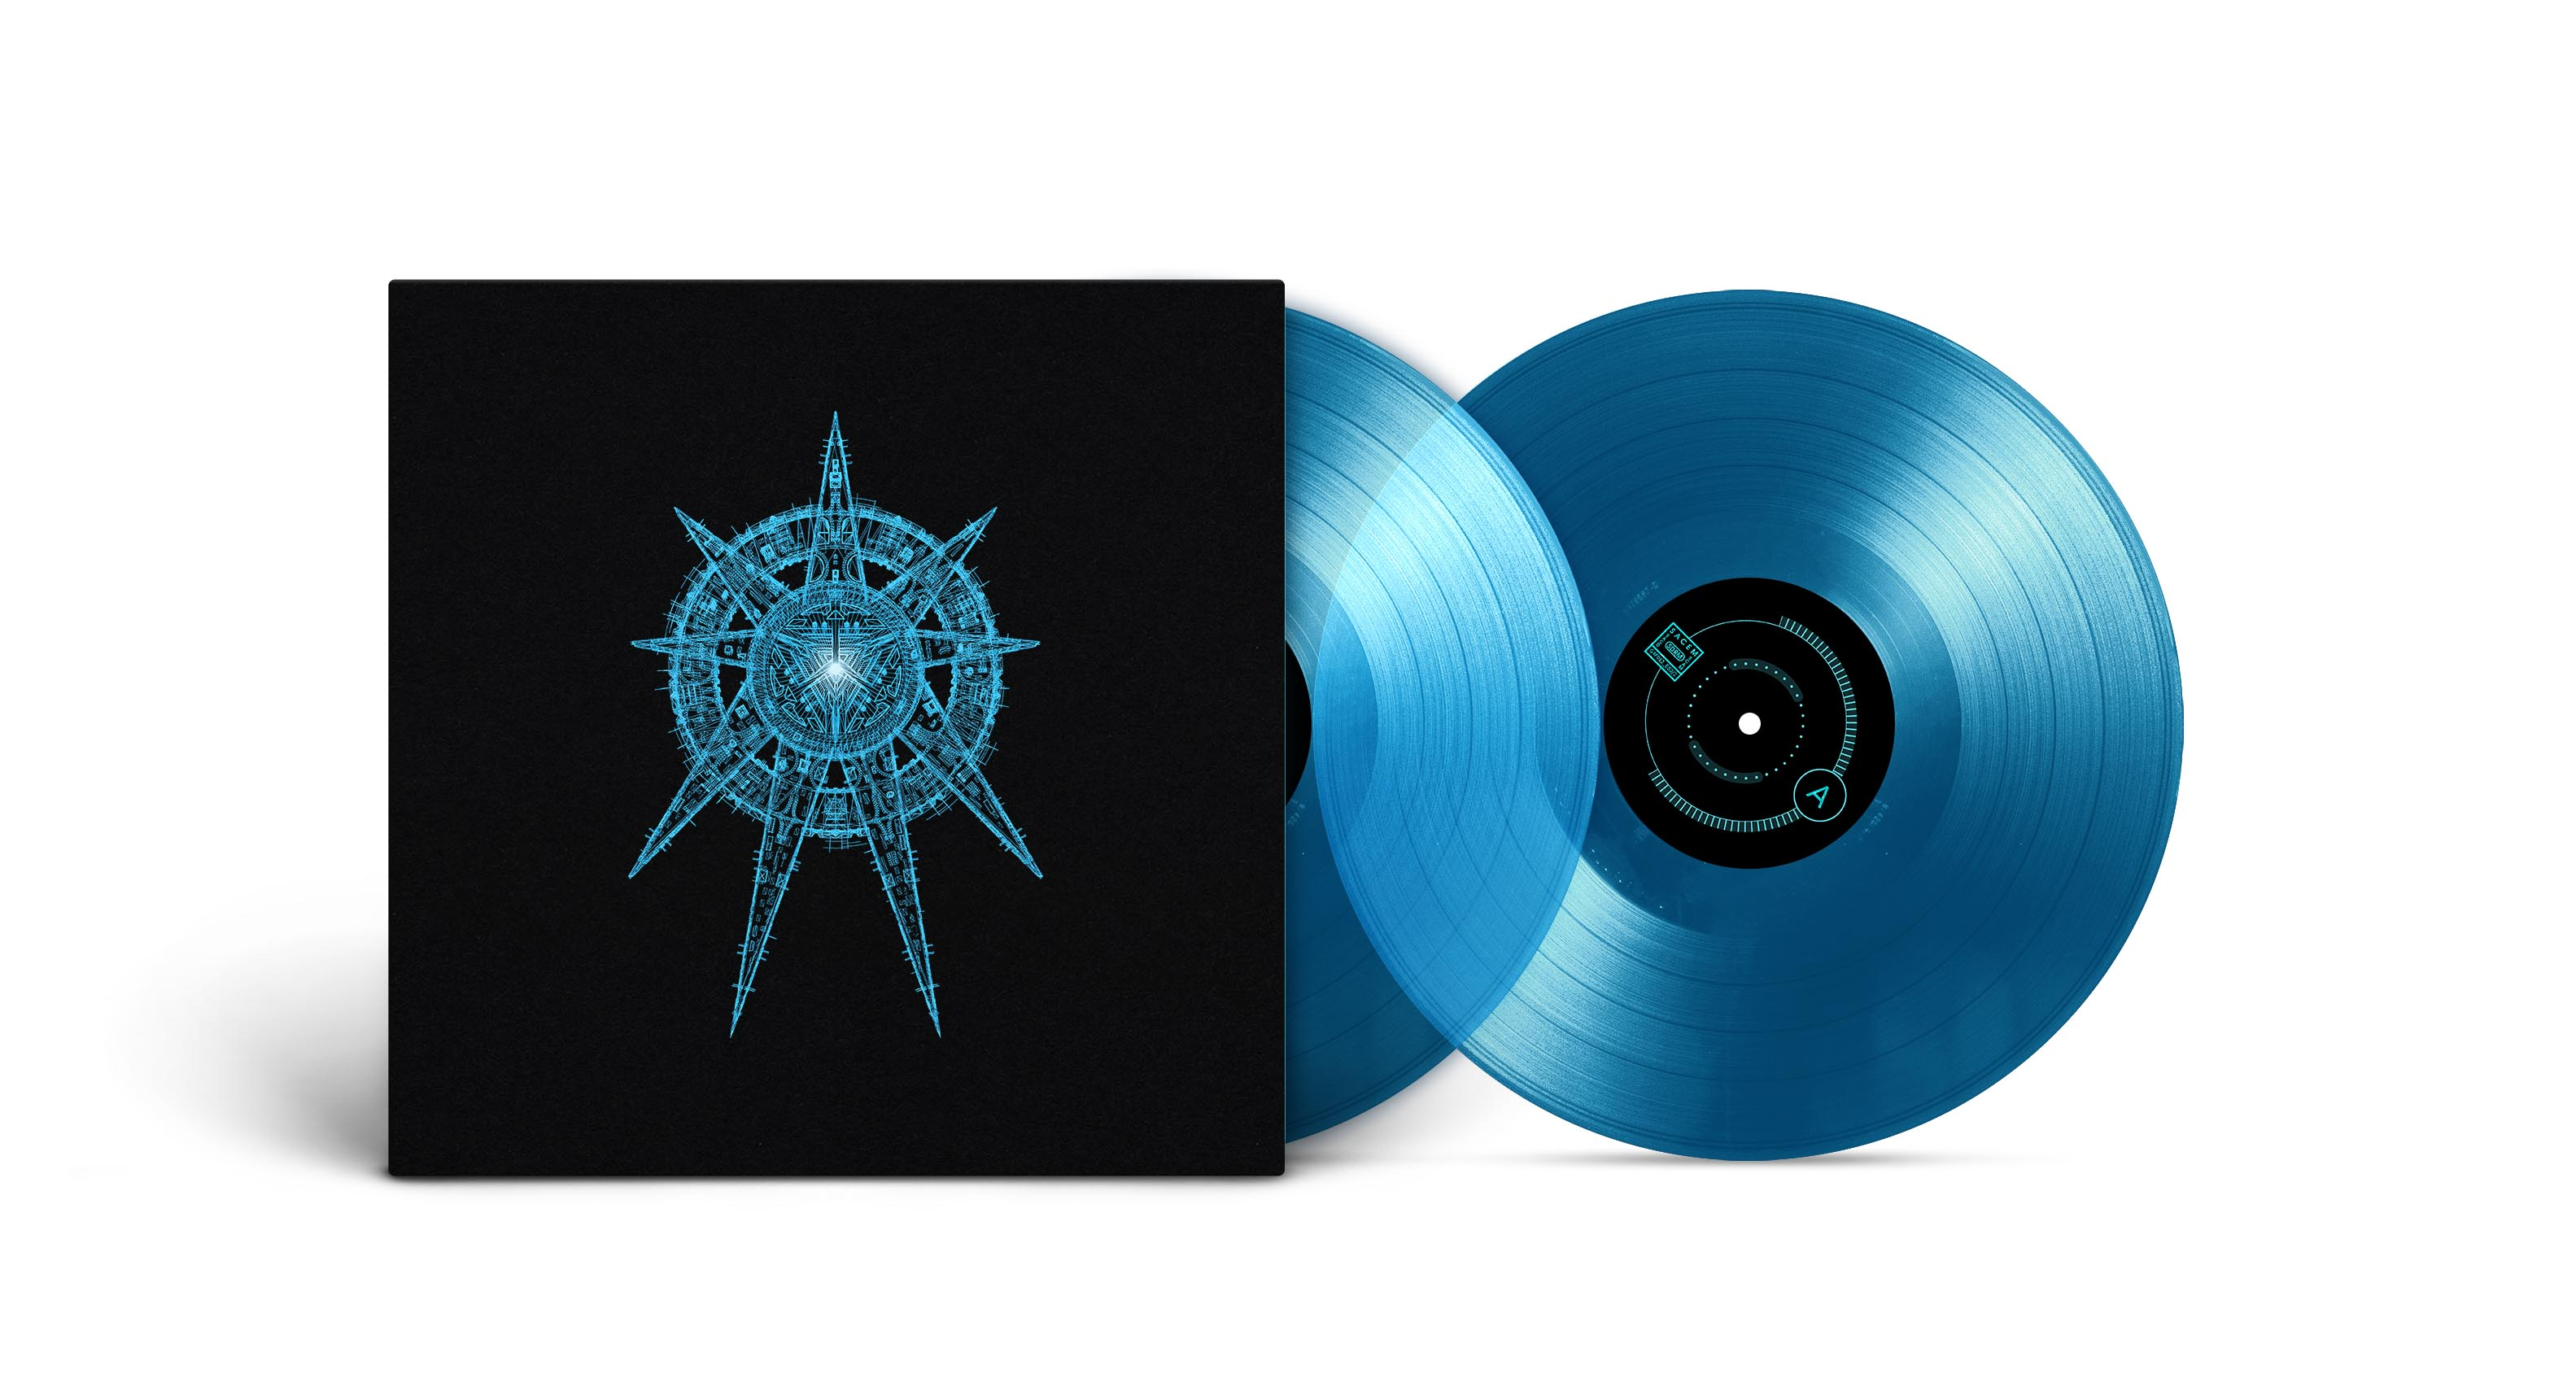 vinyl edition of Endless Space 2